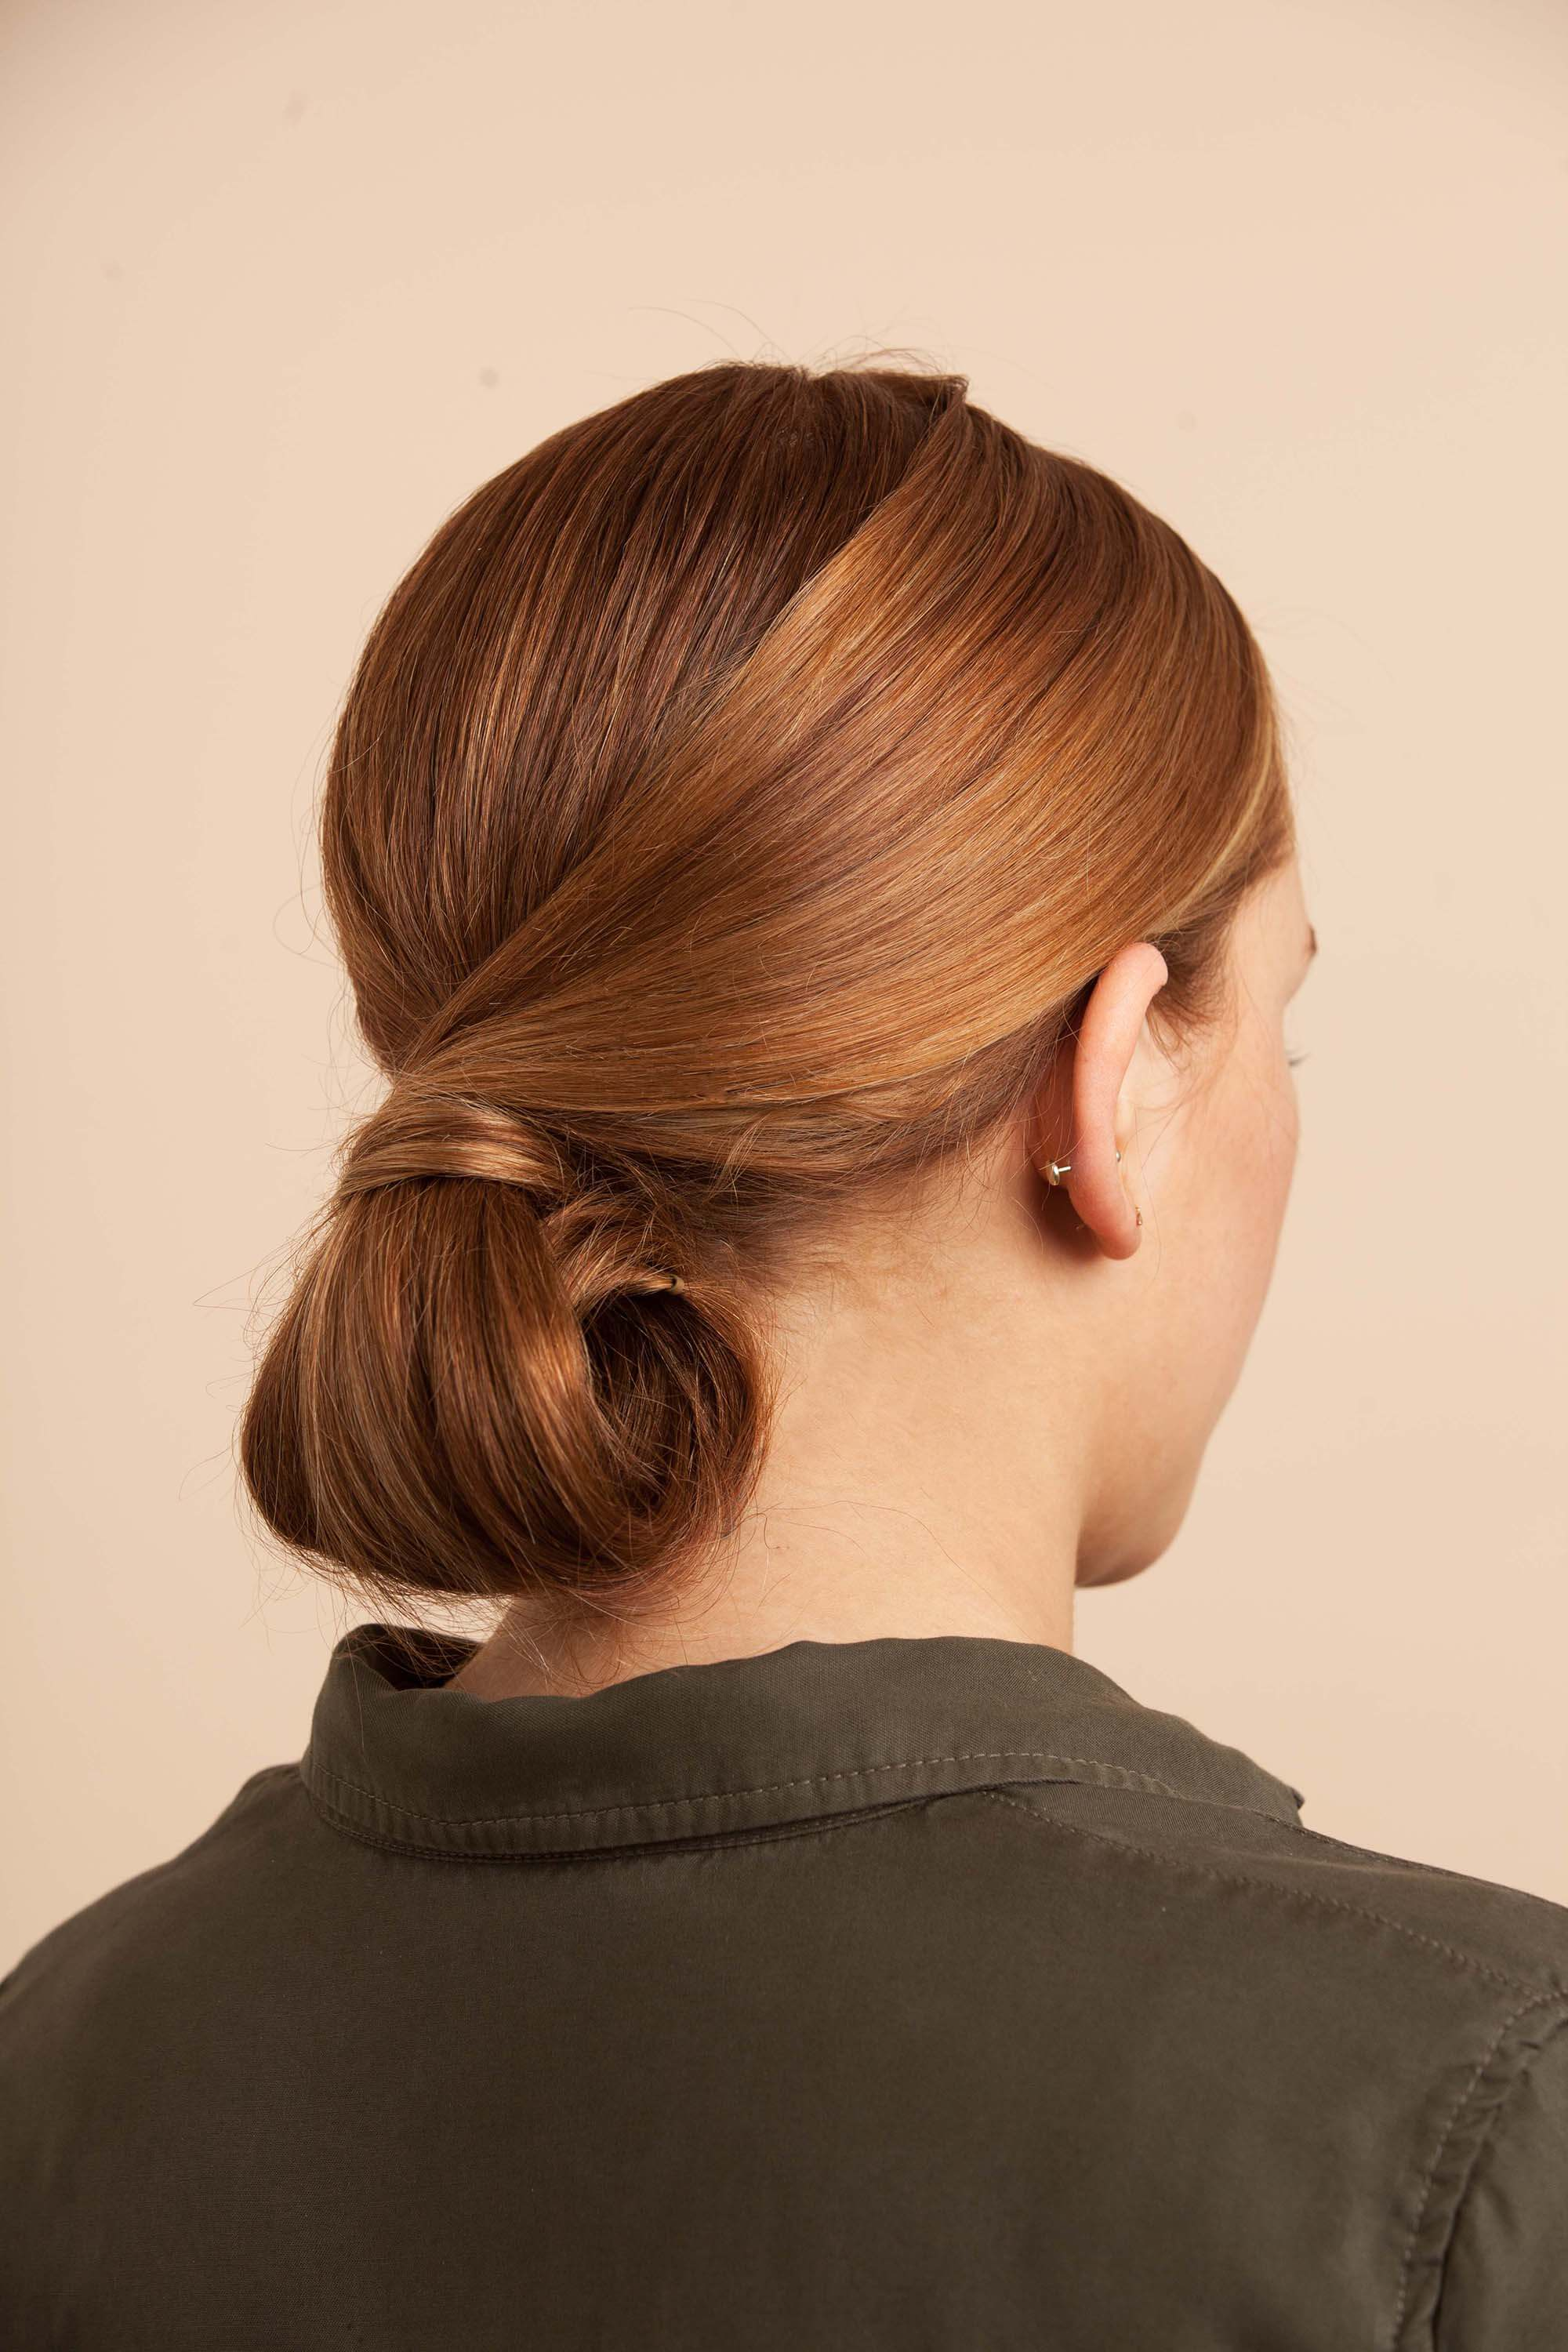 Chignon How To Recreate This Elegant Hairstyle In 3 Ways